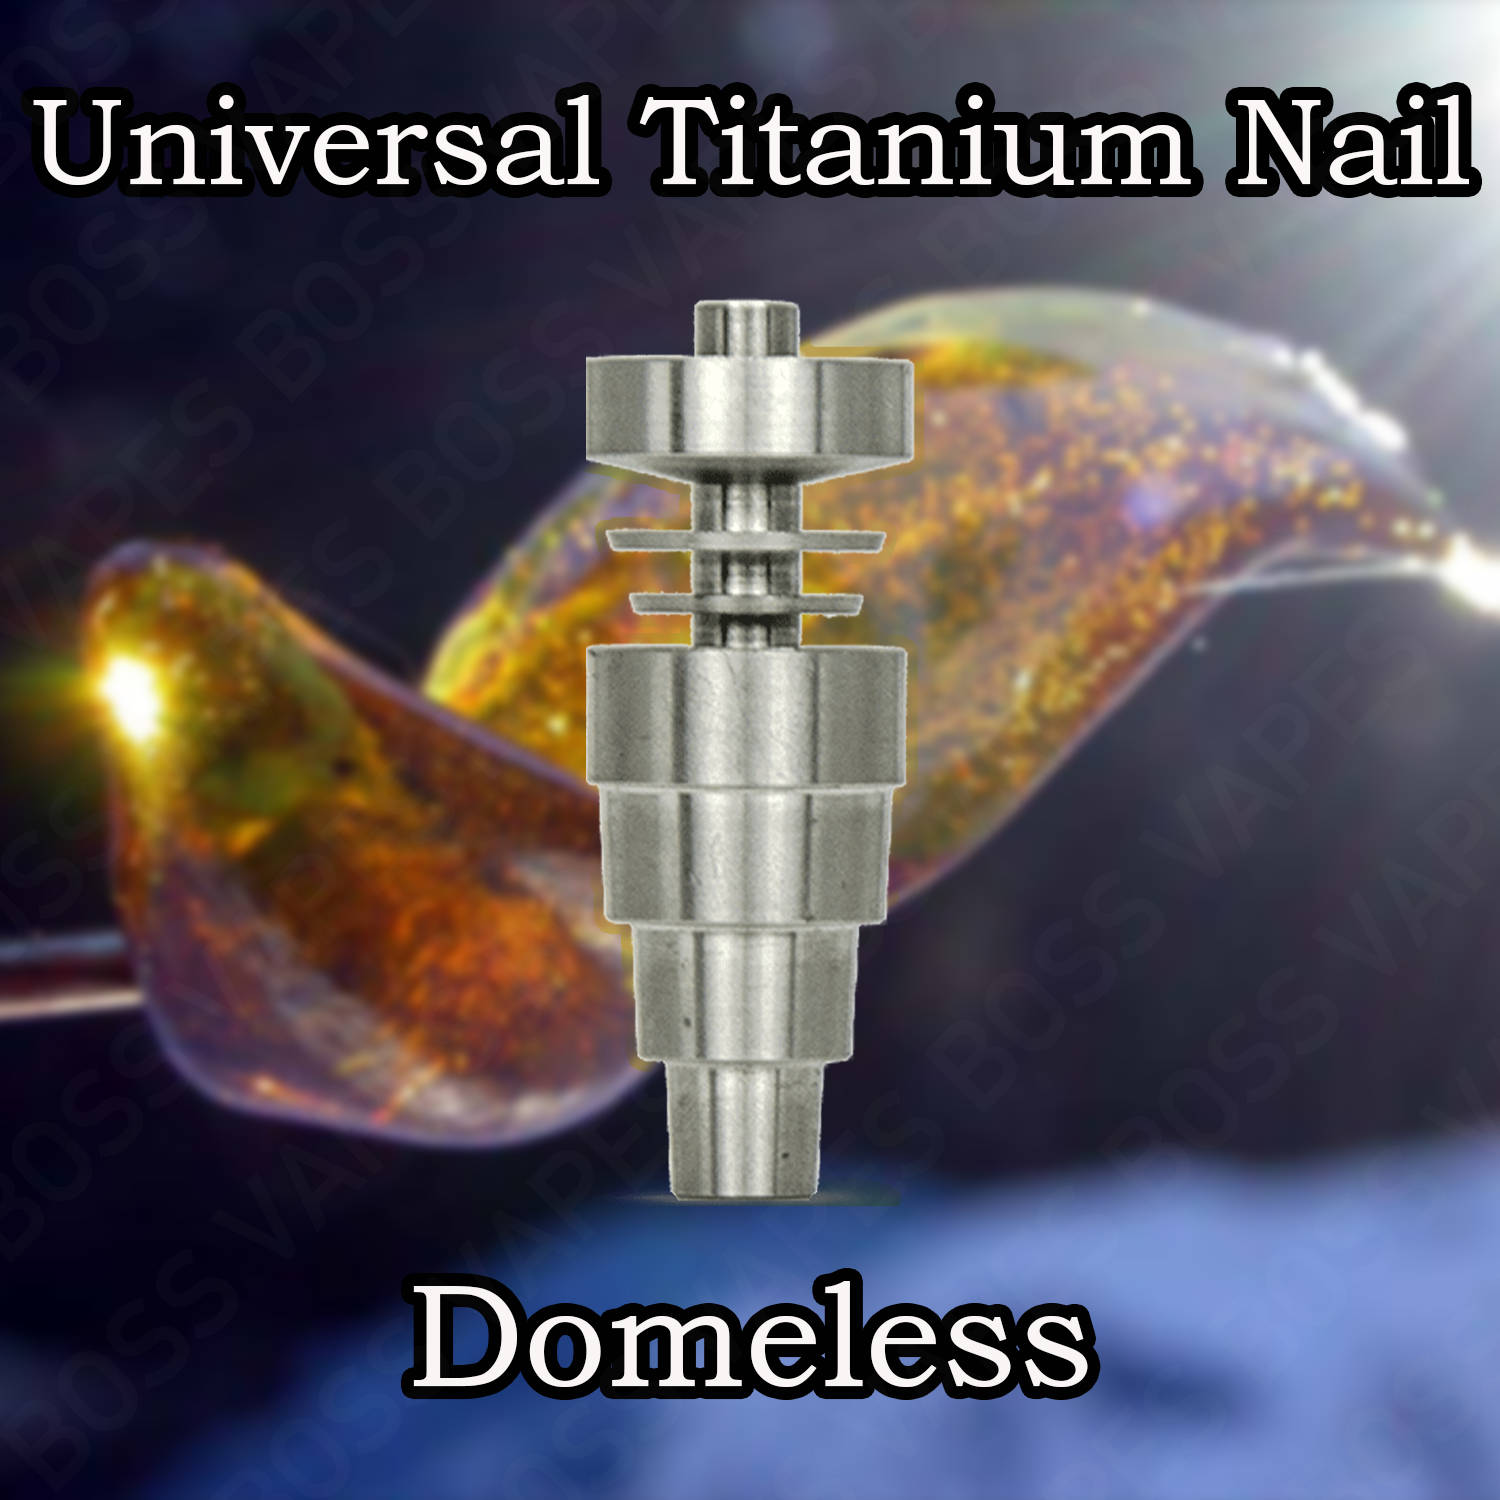 6-In-1 Universal Titanium Nail For E-Nails